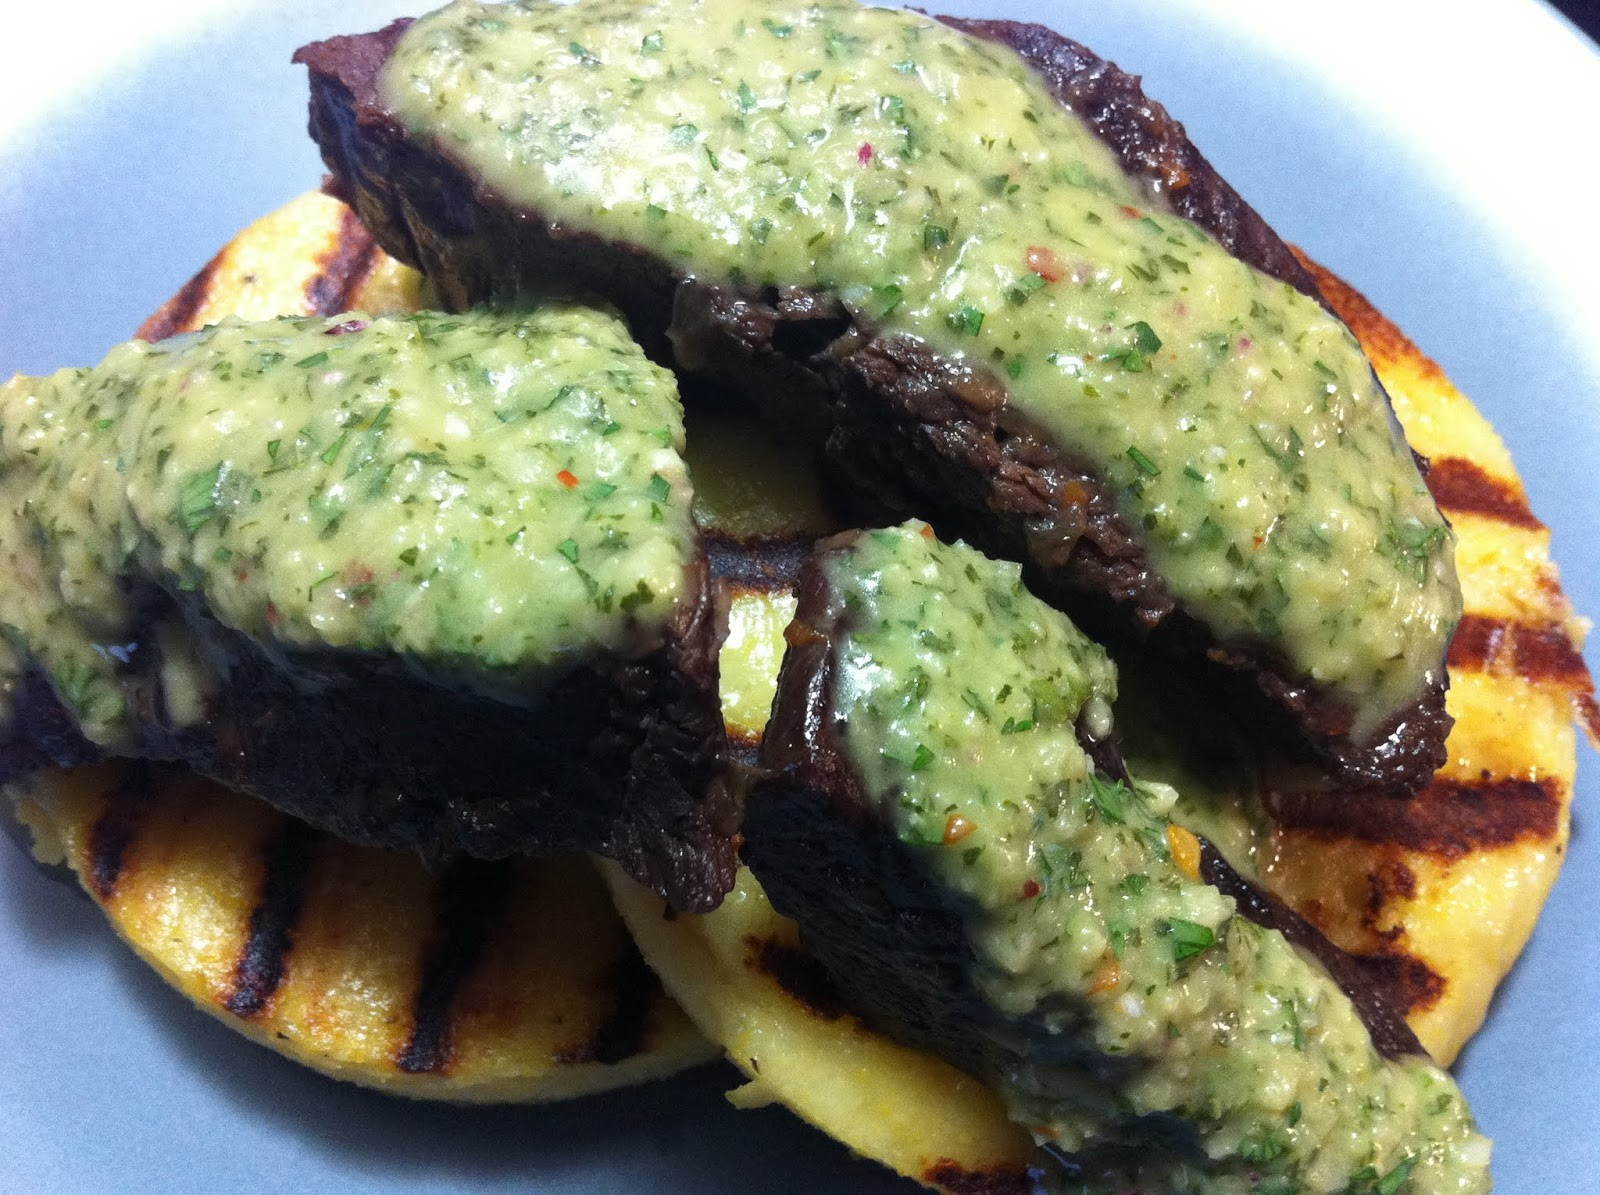 ribs short ribs argentinean style grilled short ribs with chimichurri ...